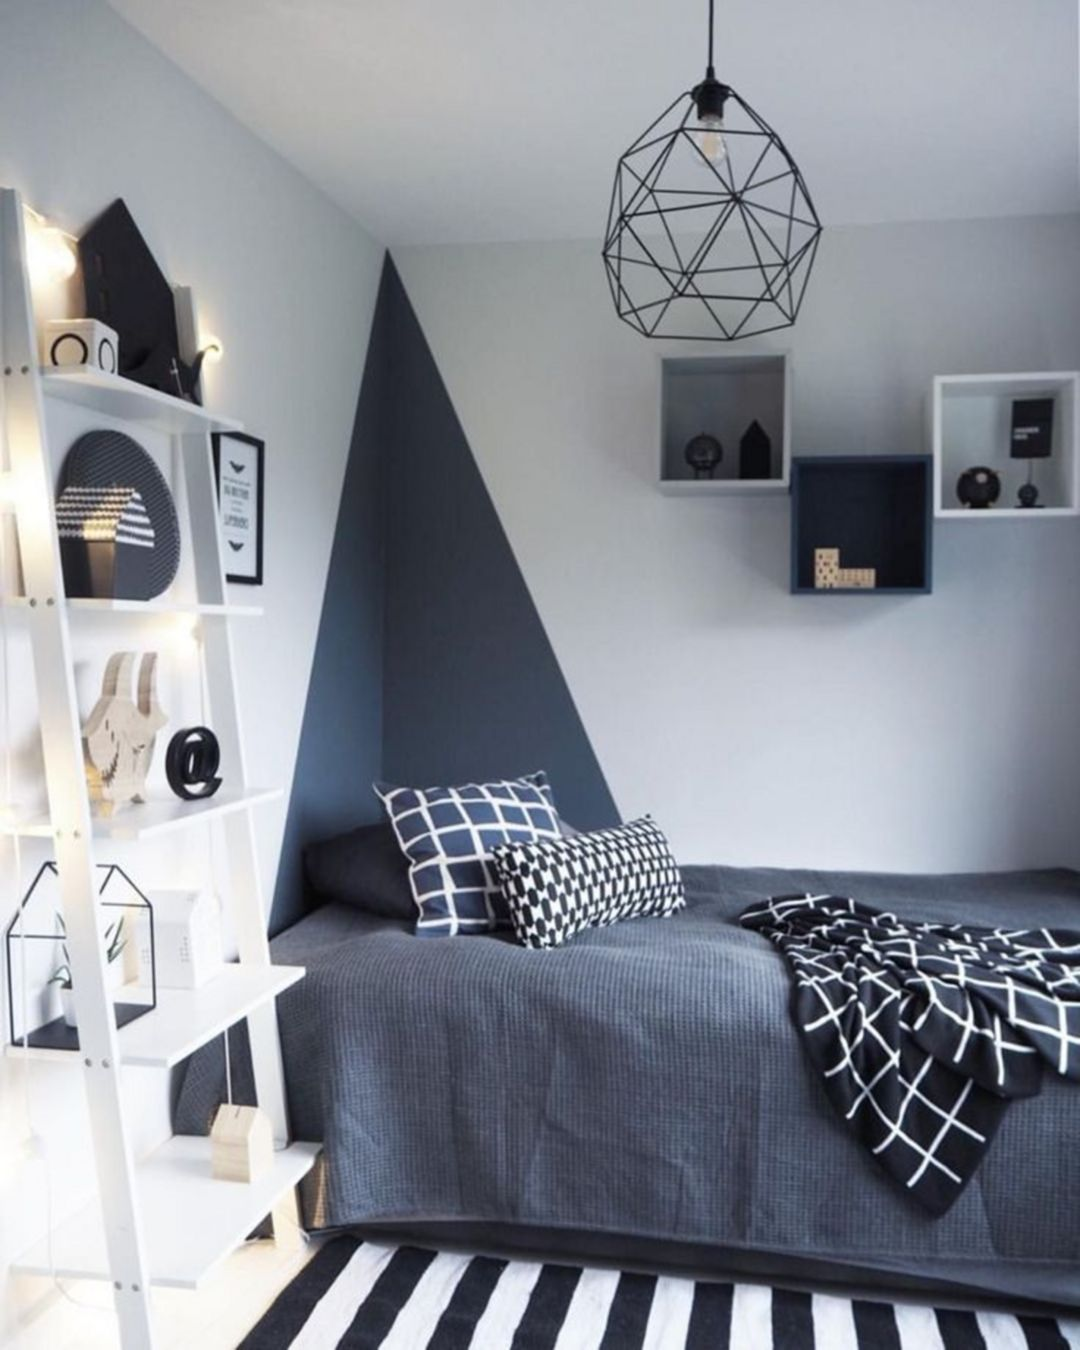 27 Impressive And Chic DIY Bedroom Decoration Ideas That Make You Want To Have It images